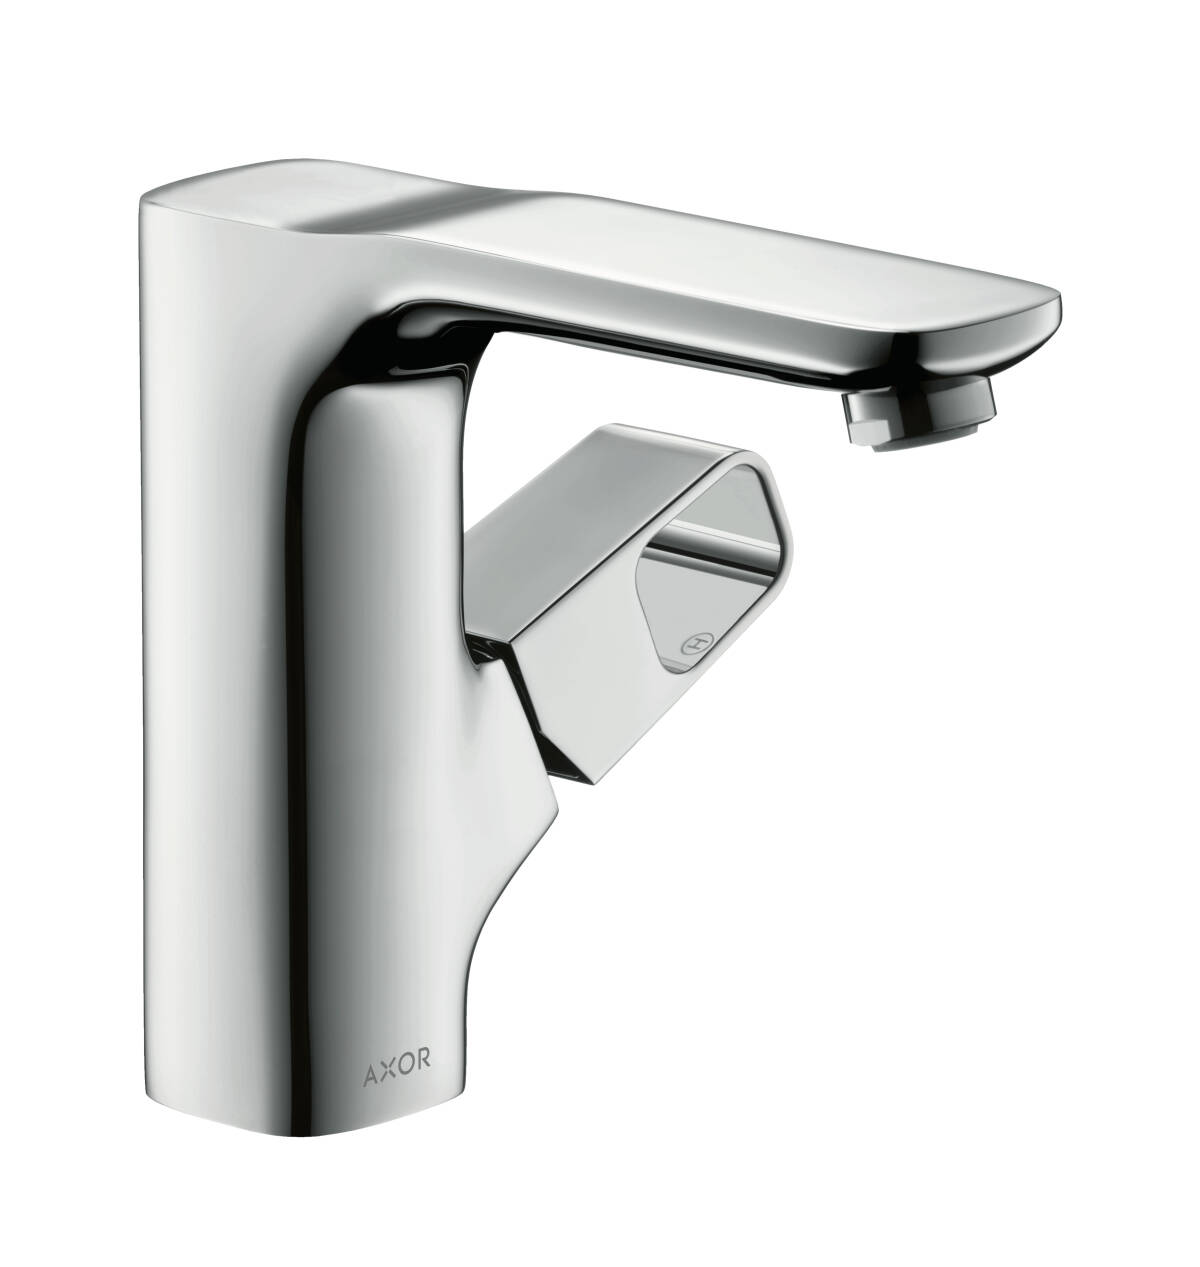 Single lever basin mixer 130 with pop-up waste set, Chrome, 11020000